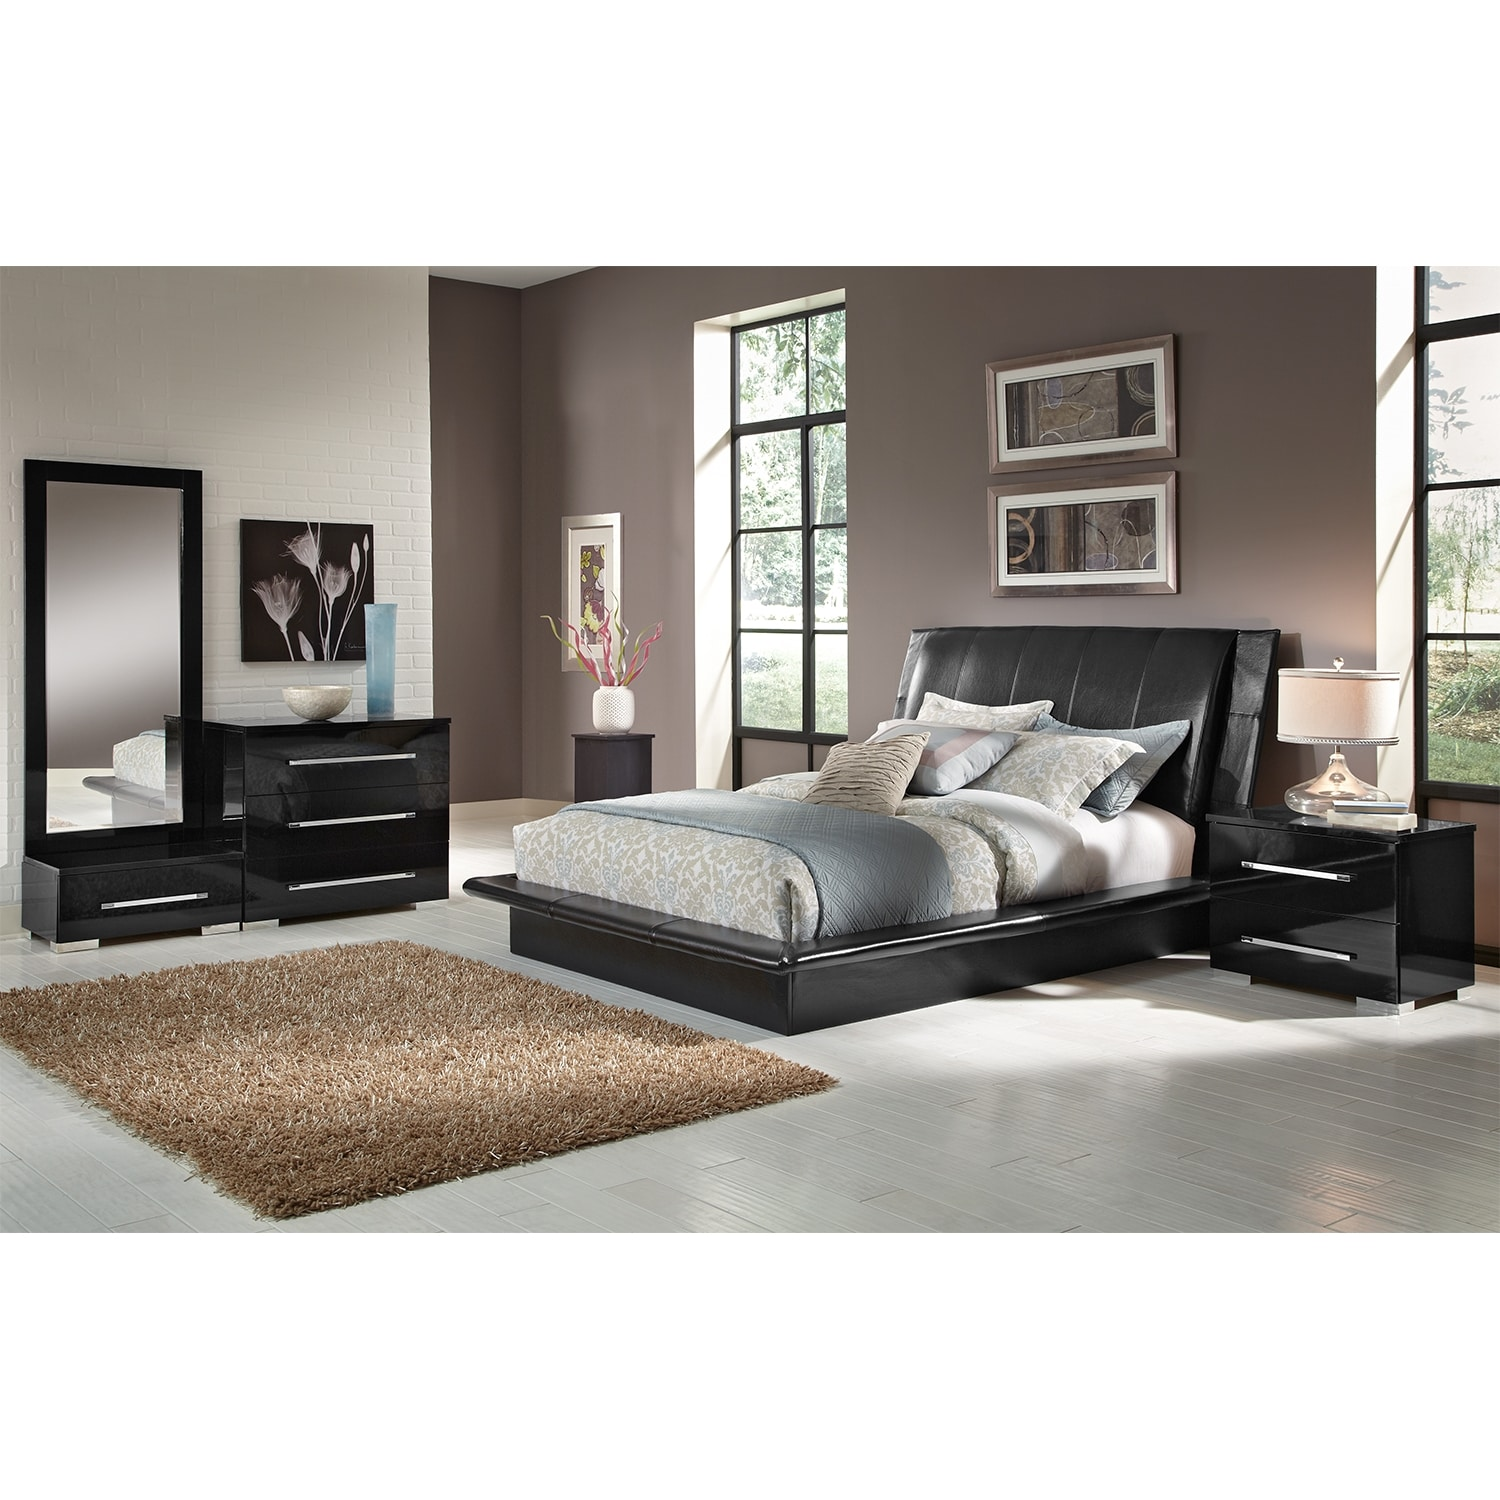 Bedroom Furniture - Dimora 6-Piece King Upholstered Bedroom Set - Black